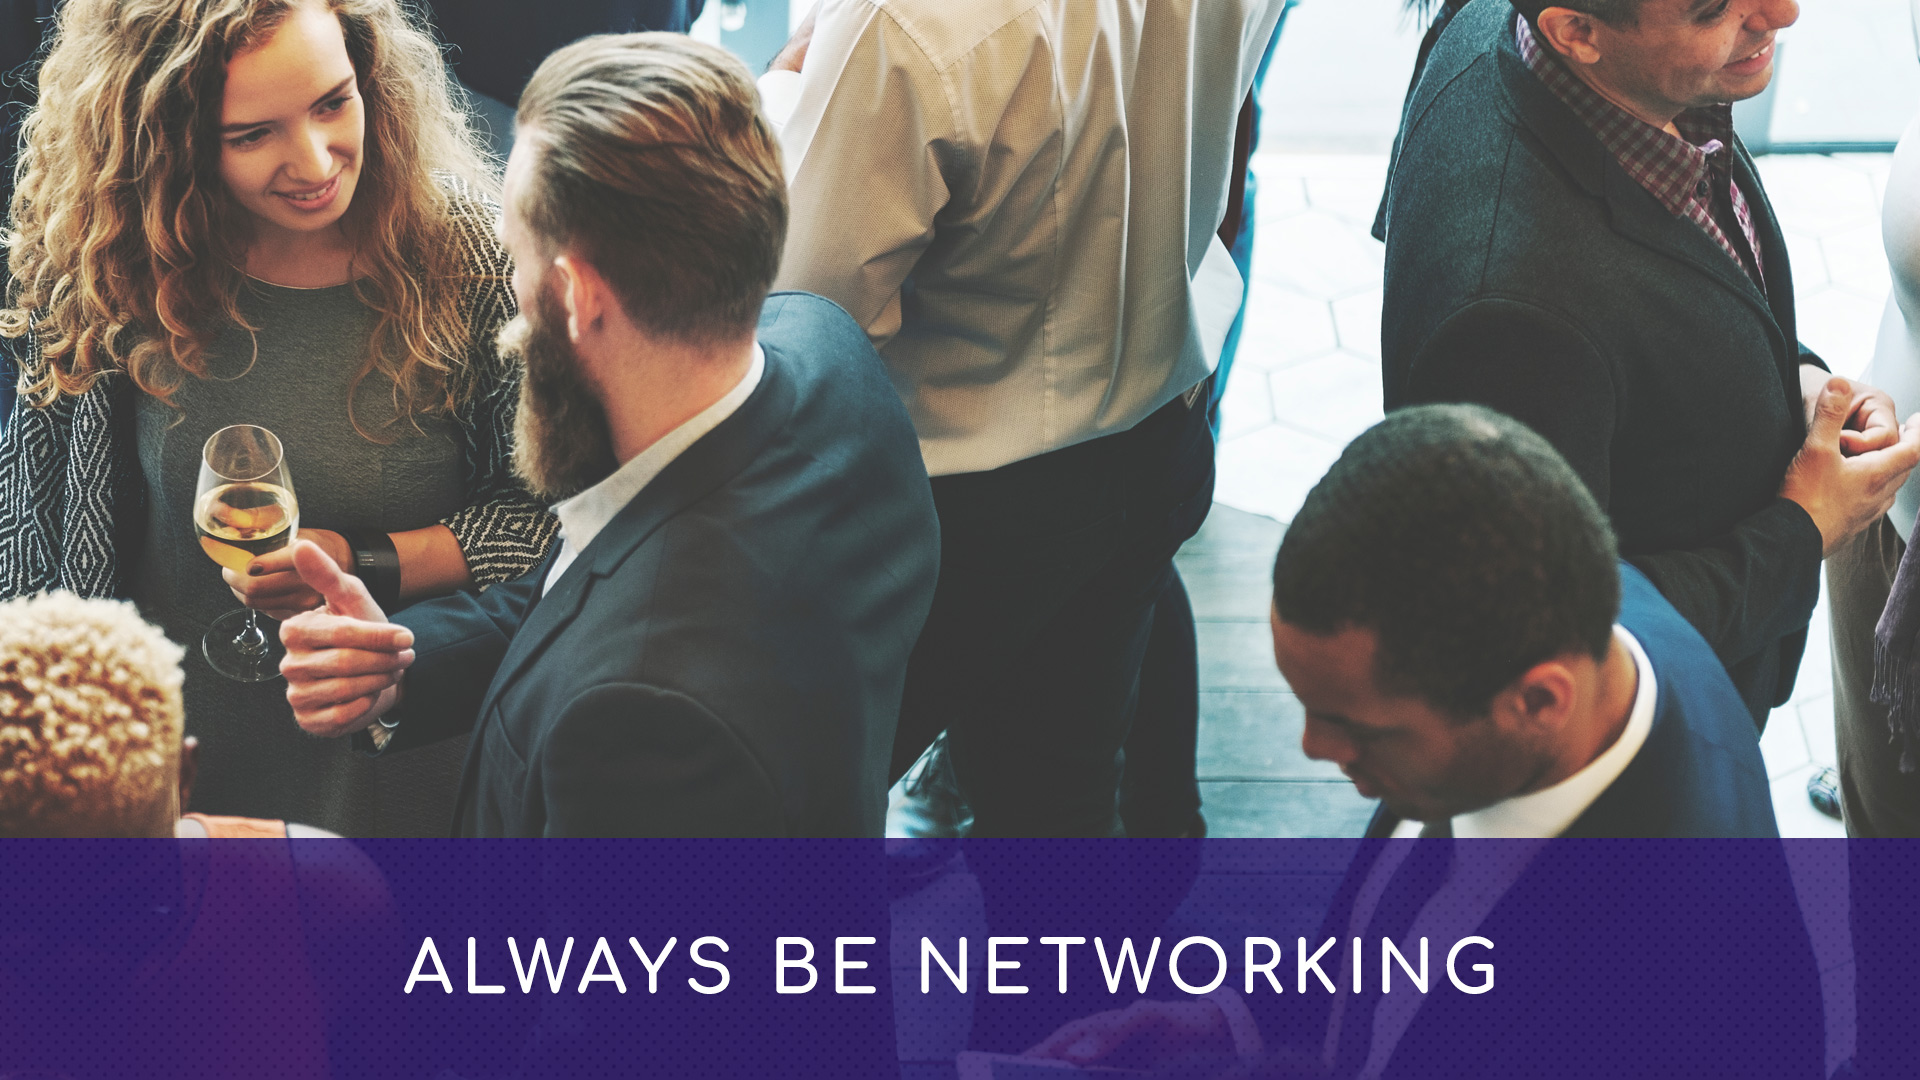 ALWAYS Be Networking (advice from Rick Sloboda)